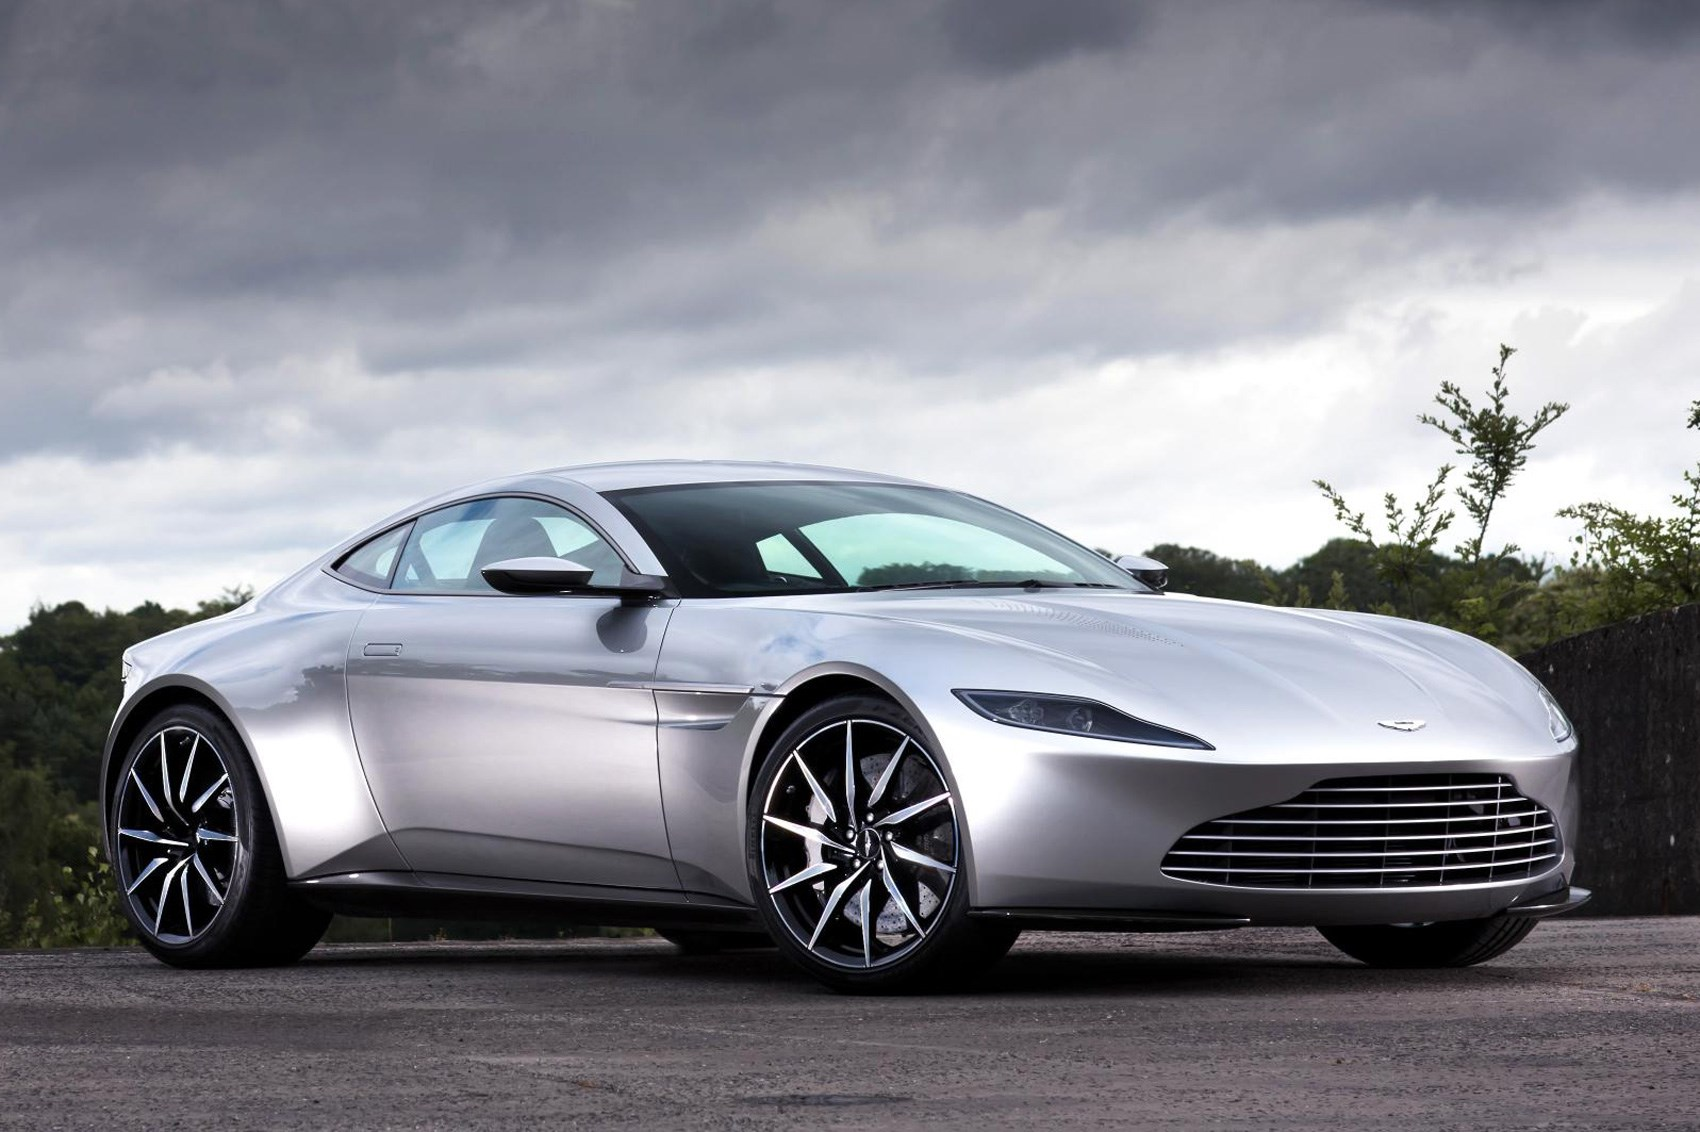 New Aston Martin Vantage Pics Specs Prices CAR Magazine - Aston martin concept